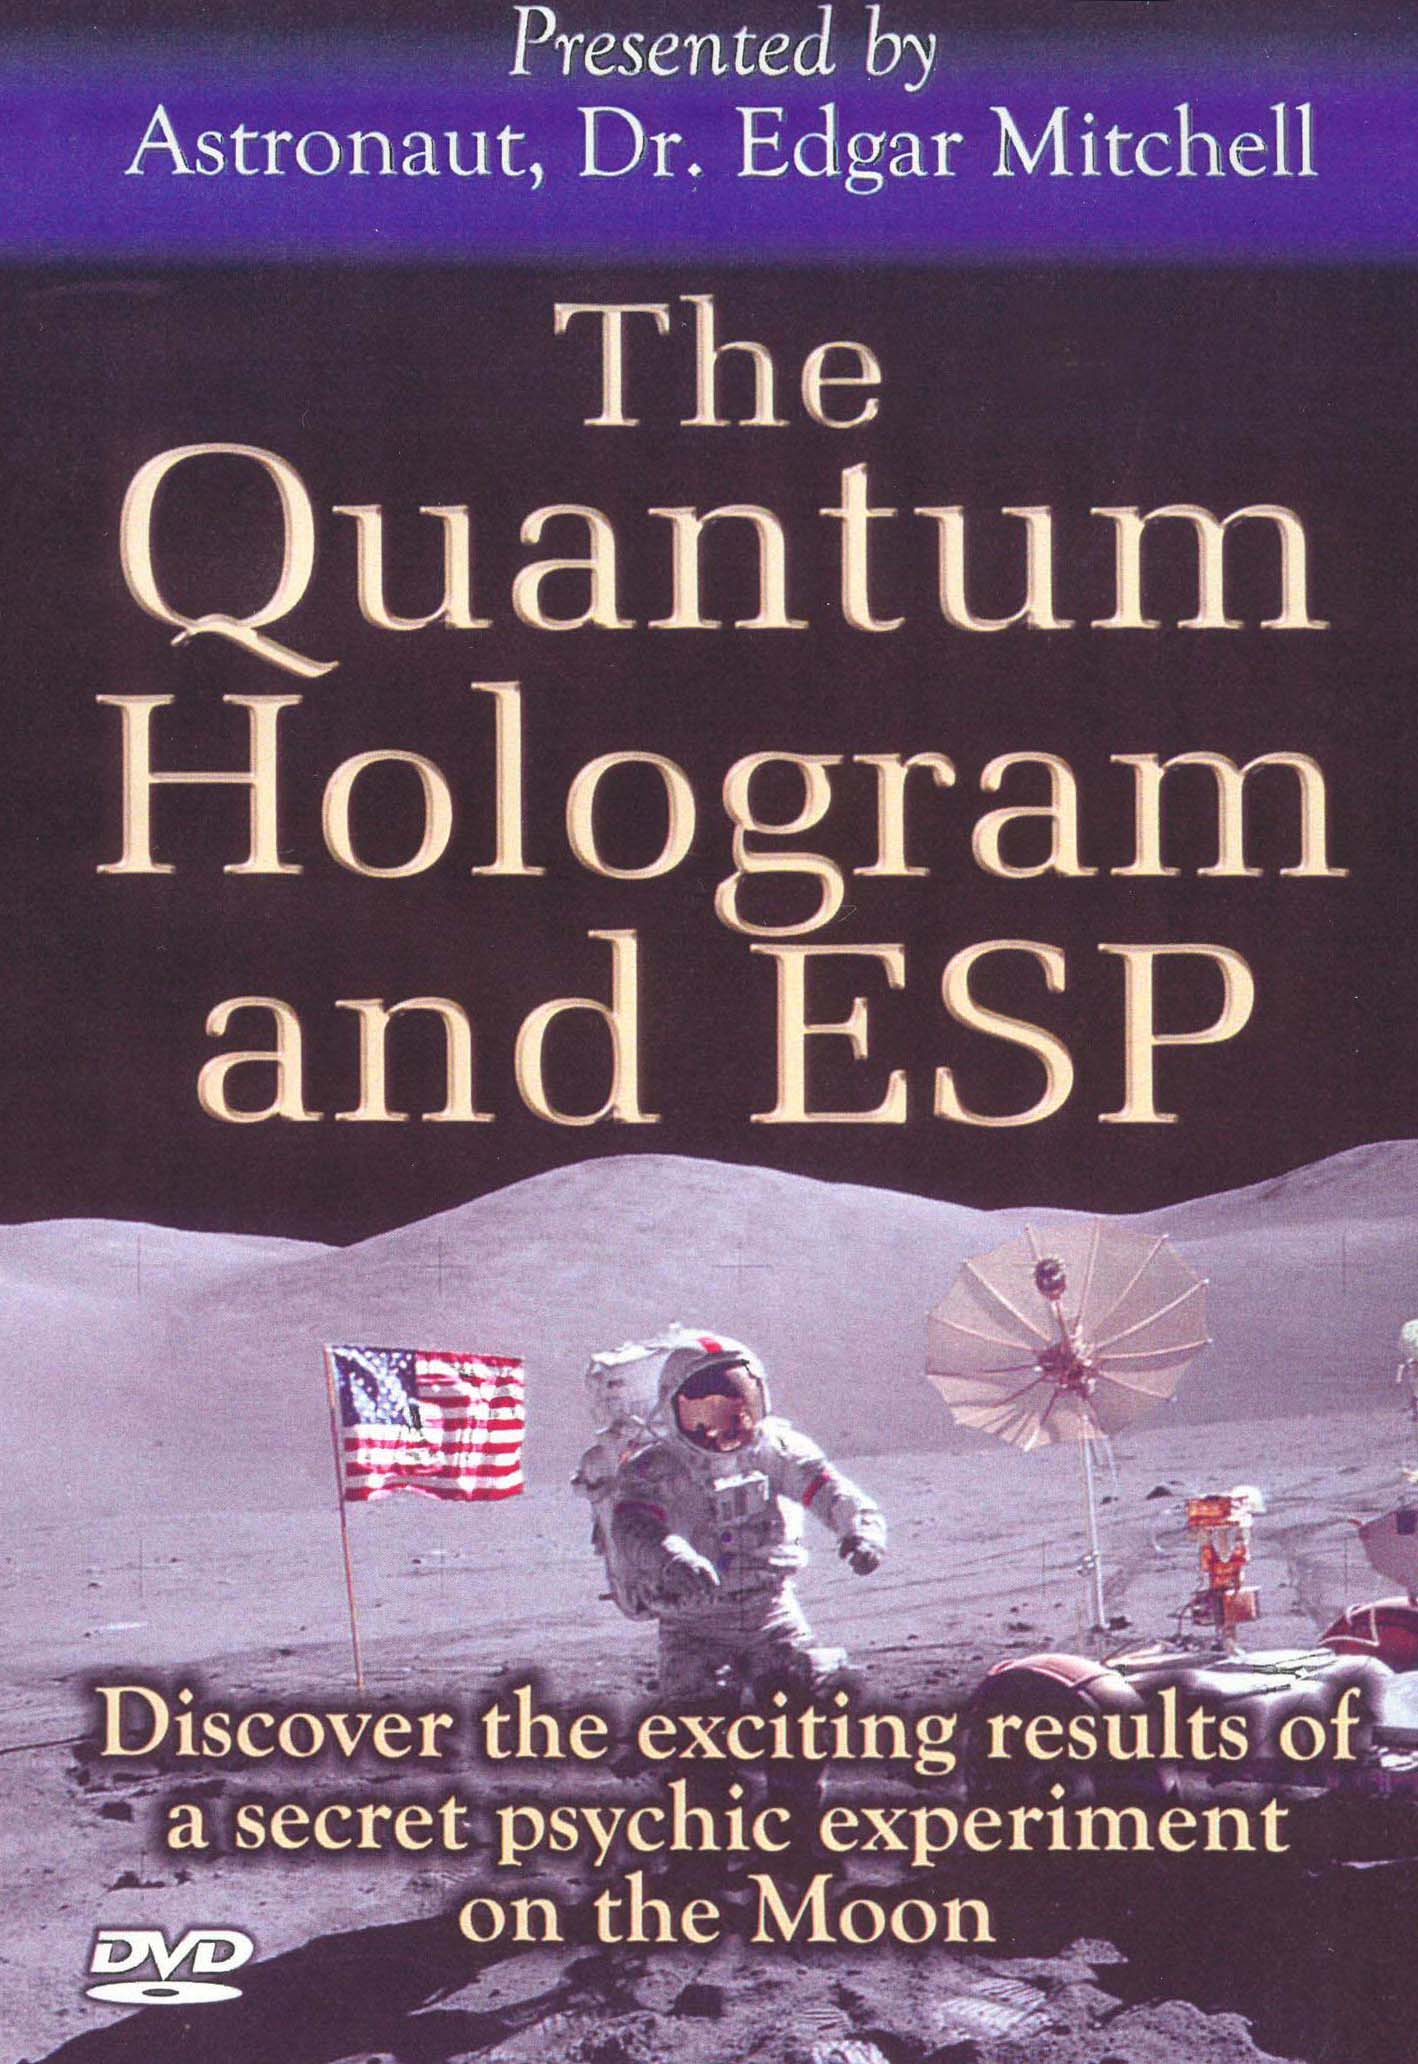 The Quantum Hologram and ESP